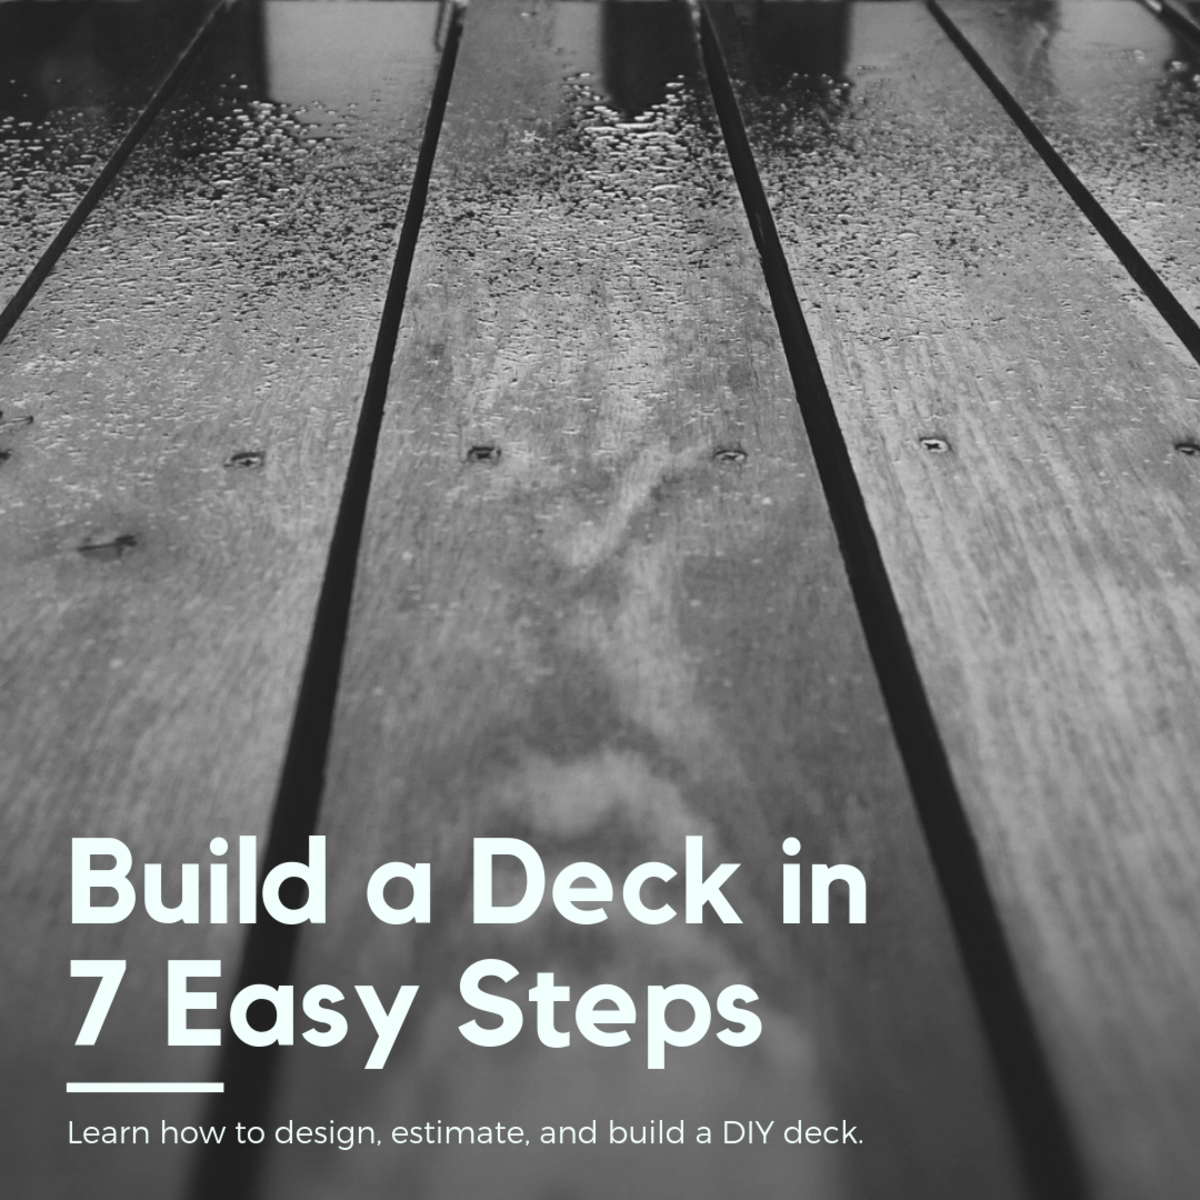 Estimate and Build a Deck in 7 Easy Steps | Dengarden